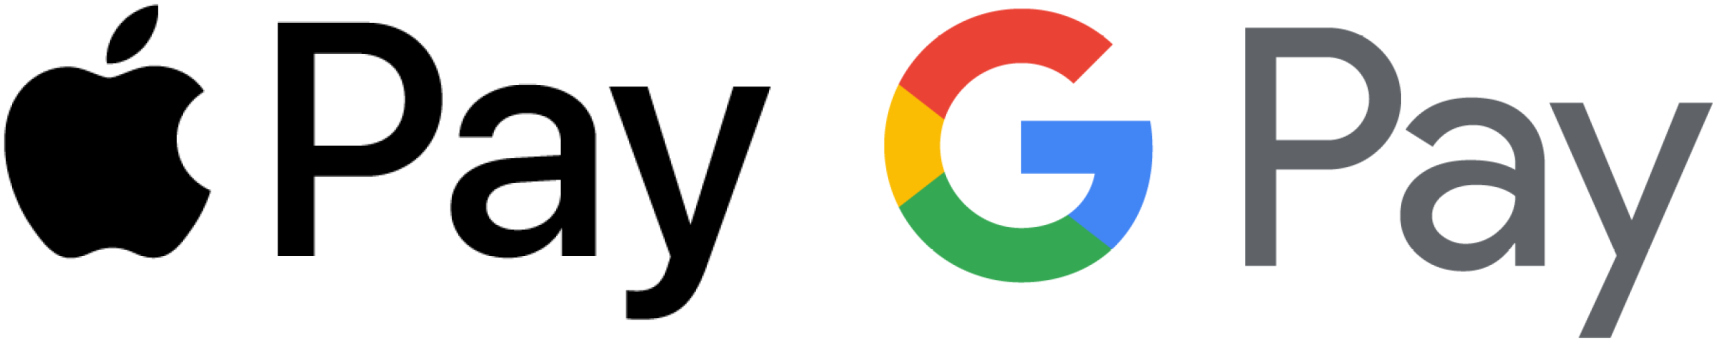 Apple Pay - Google Pay